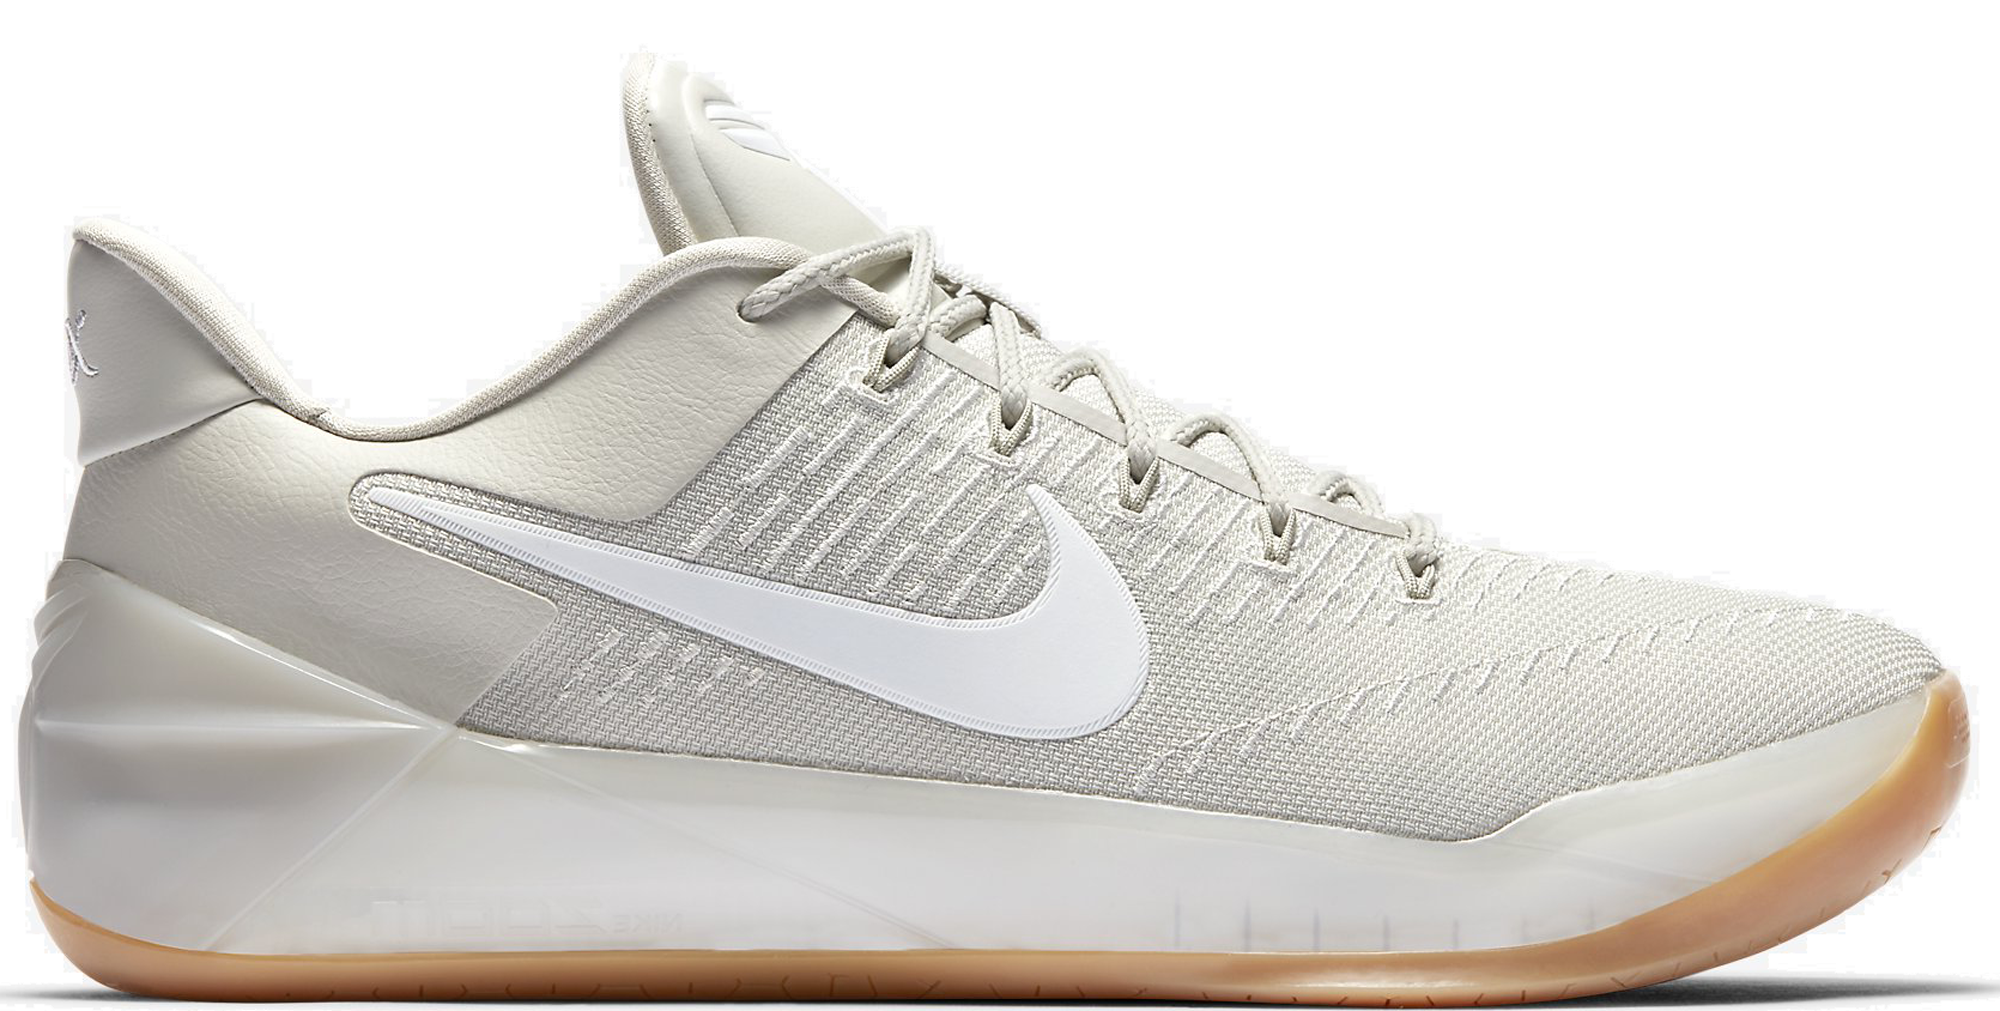 Nike Kobe A.D. Shoes Grey/Light BlueShoes_a0463